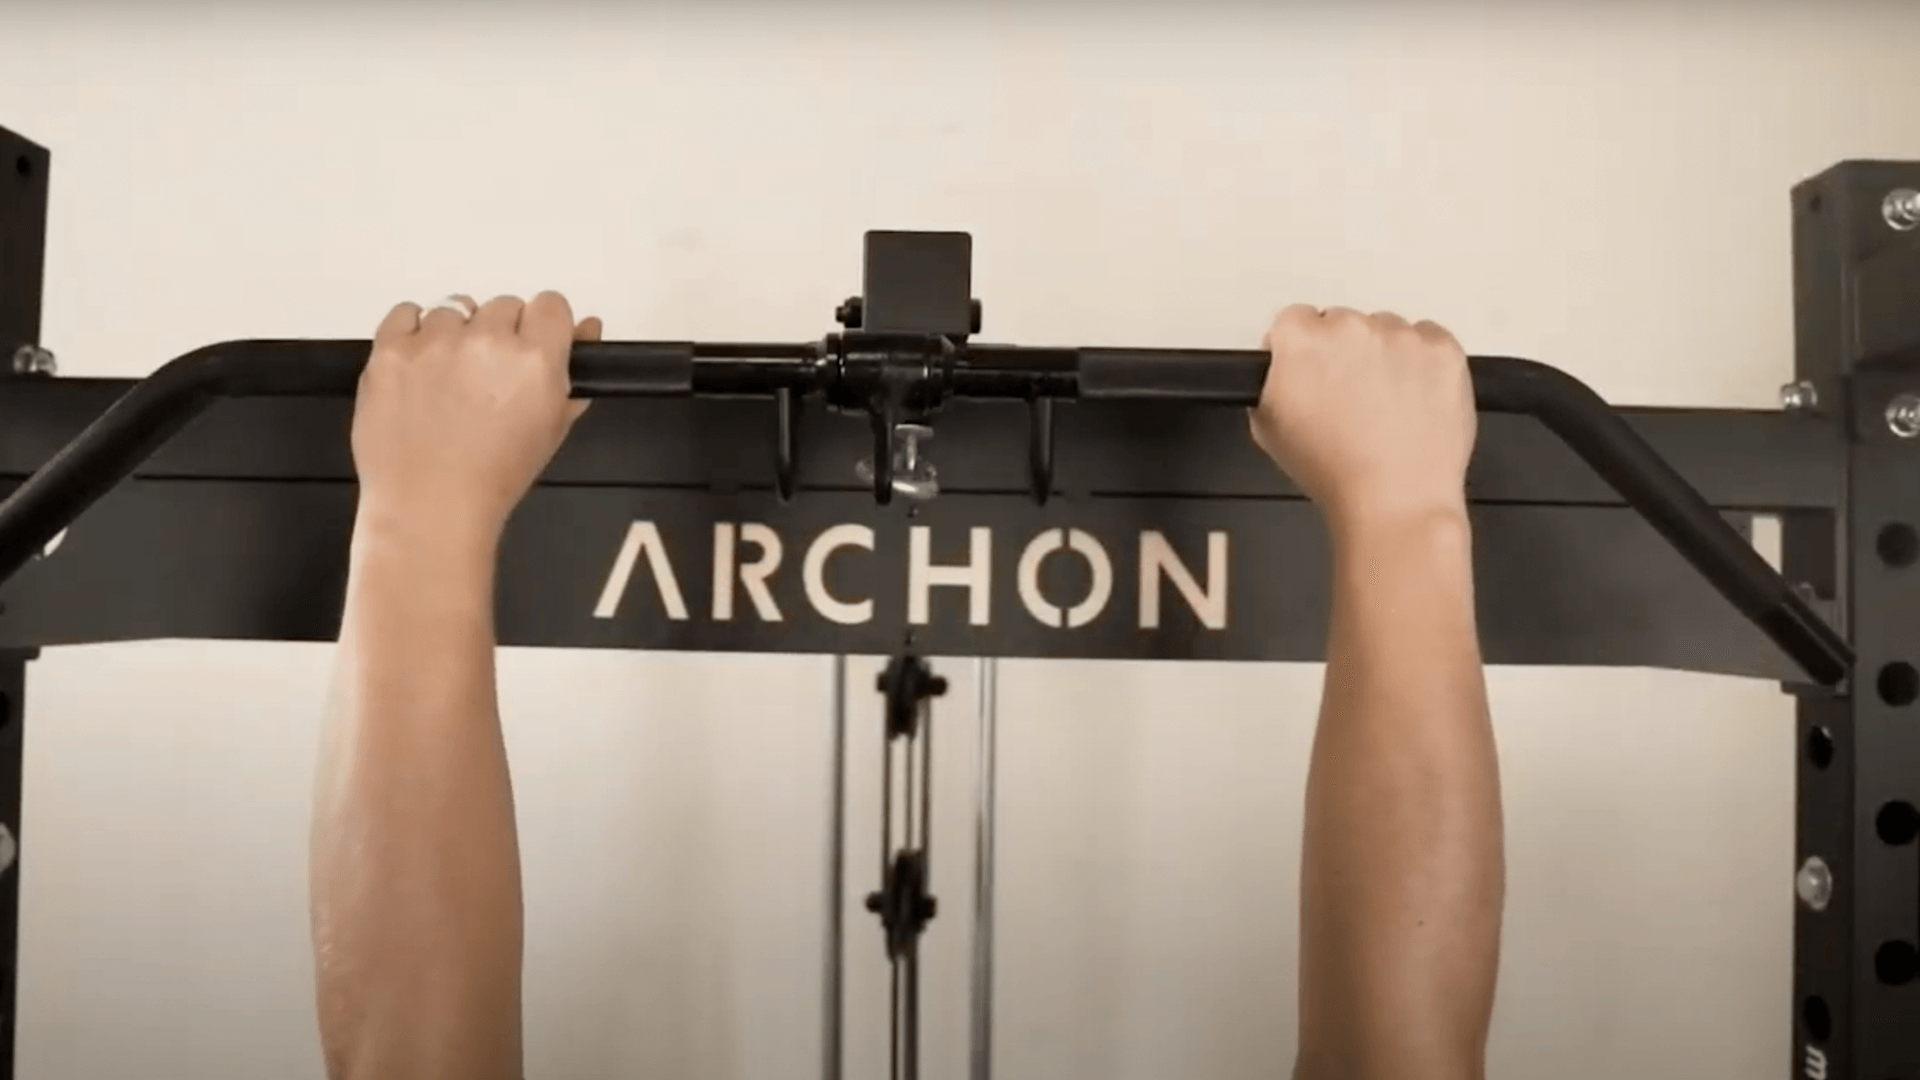 lat pull low row - Archon Fitness - gym in your home - exercise equipment store